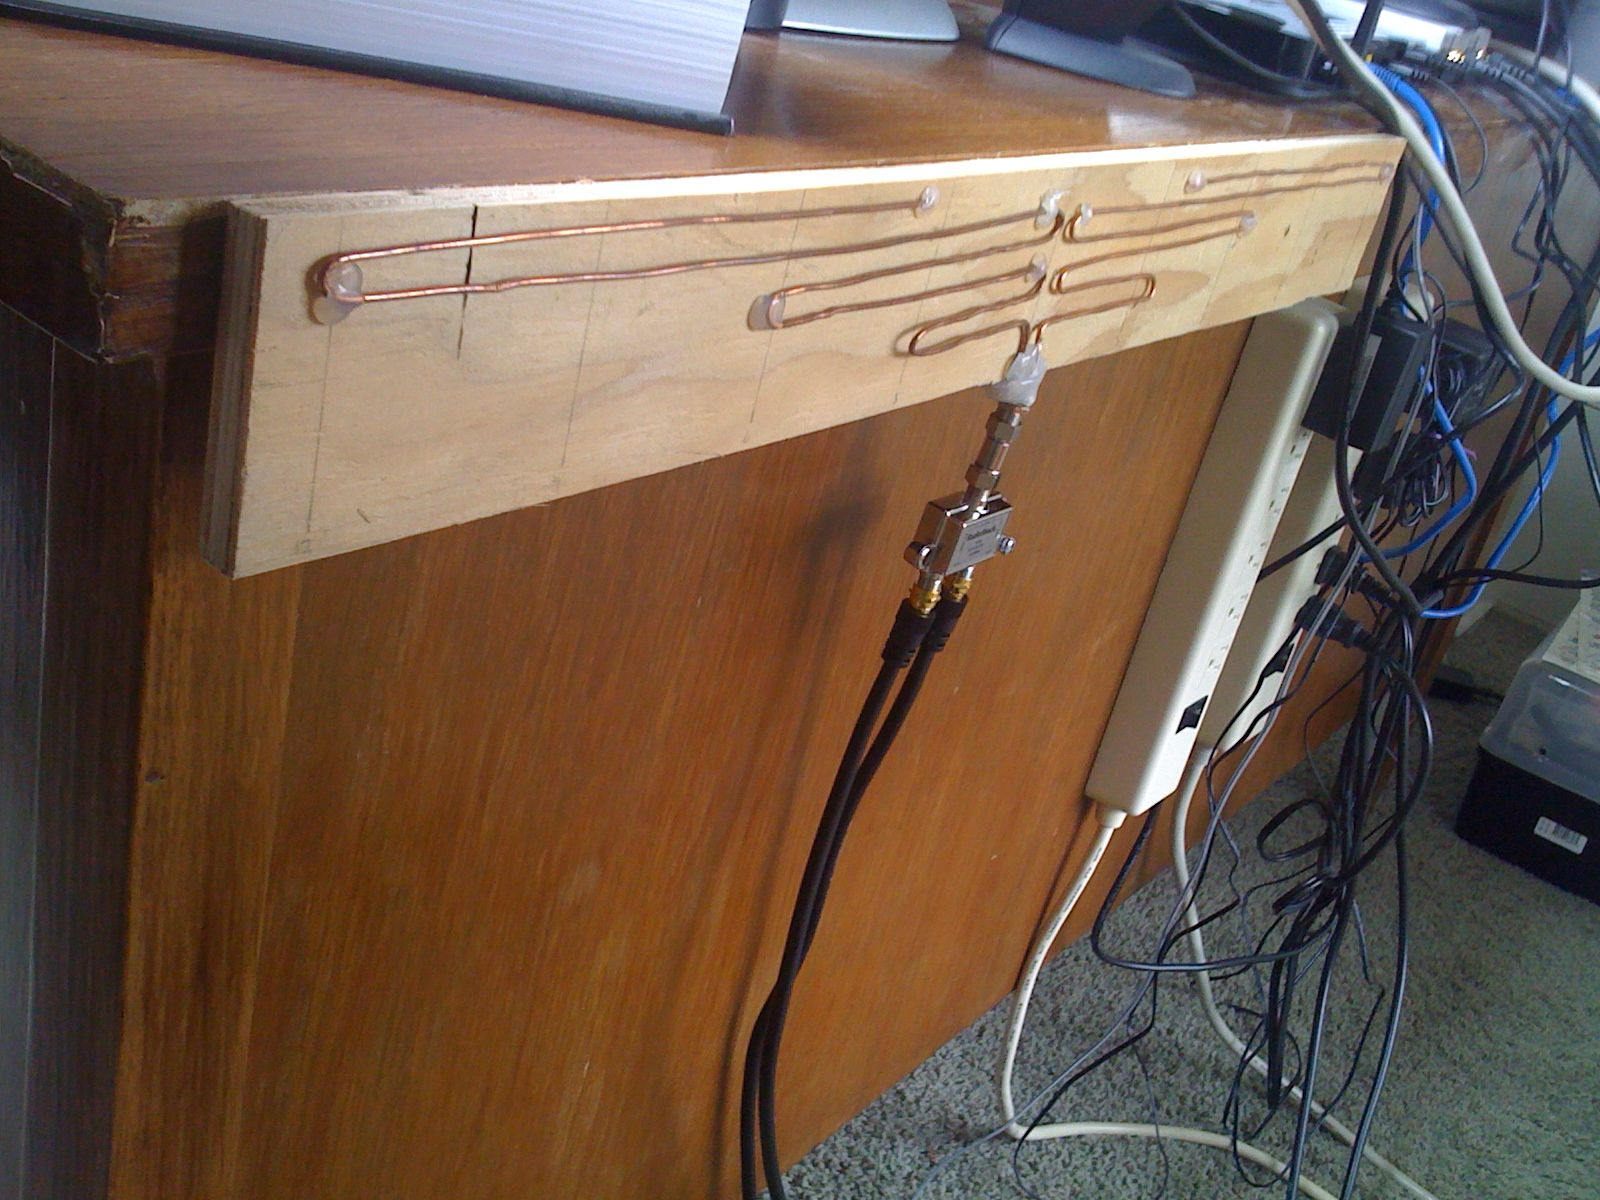 My DIY HDTV antenna (With images) Hdtv antenna, Diy tv